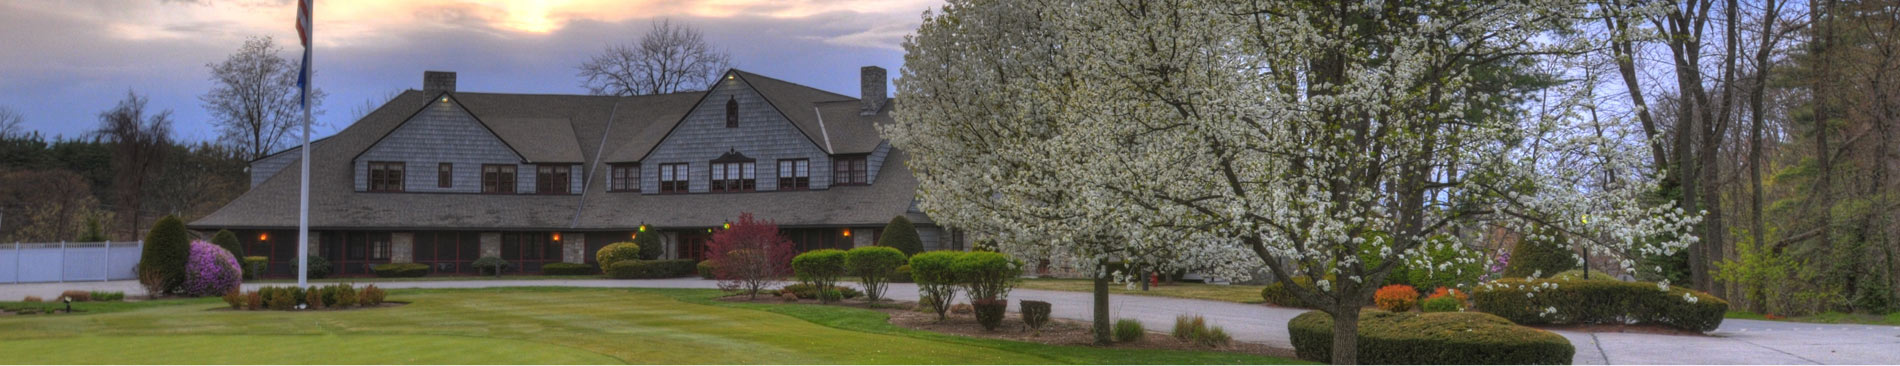 Vesper country club clubhouse